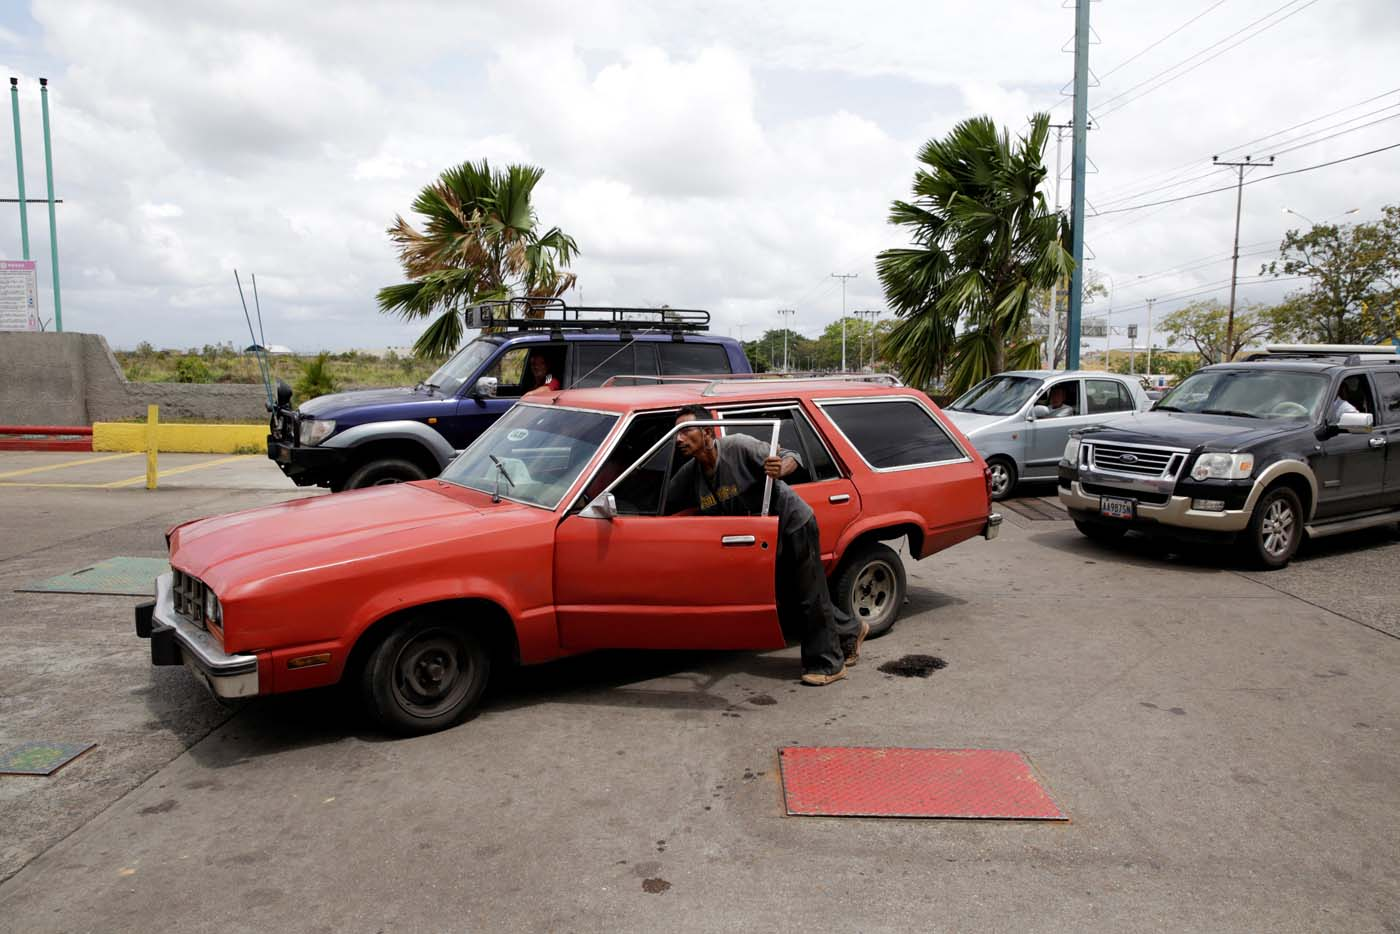 A man pushes his car after running out of gas at a gas station of Venezuelan state oil company PDVSA in Maturin, Venezuela March 23, 2017. REUTERS/Marco Bello